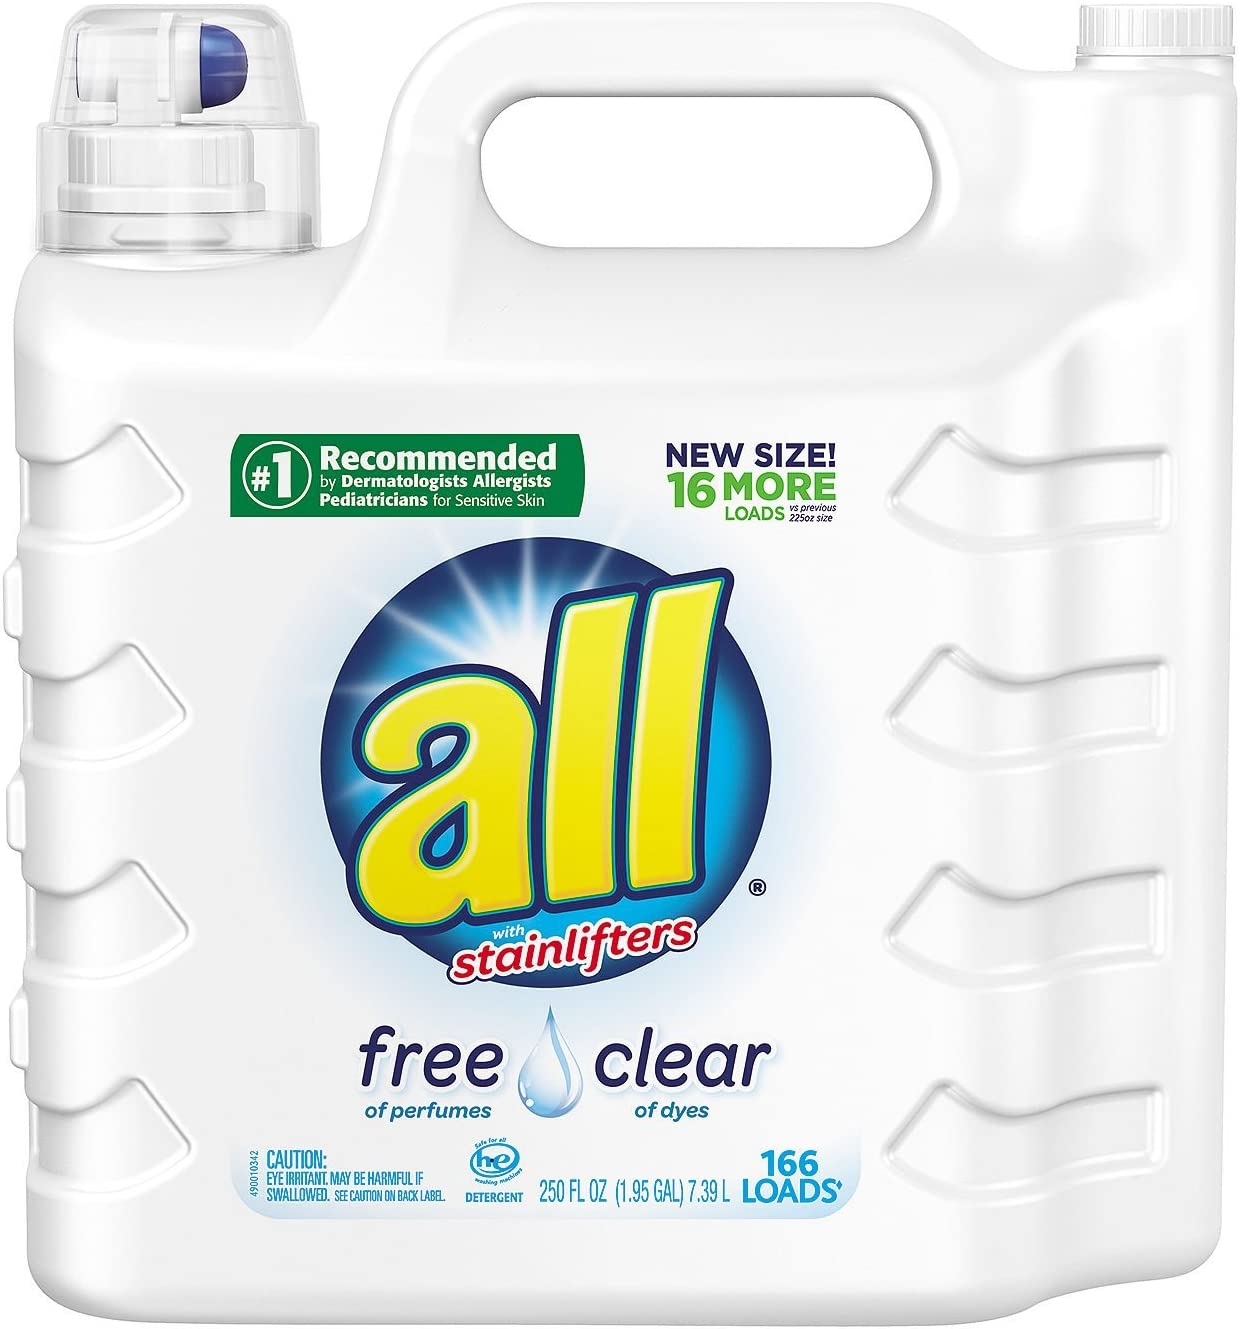 all 2X Ultra with Stainlifter Free & Clear (250 oz., 166 loads)